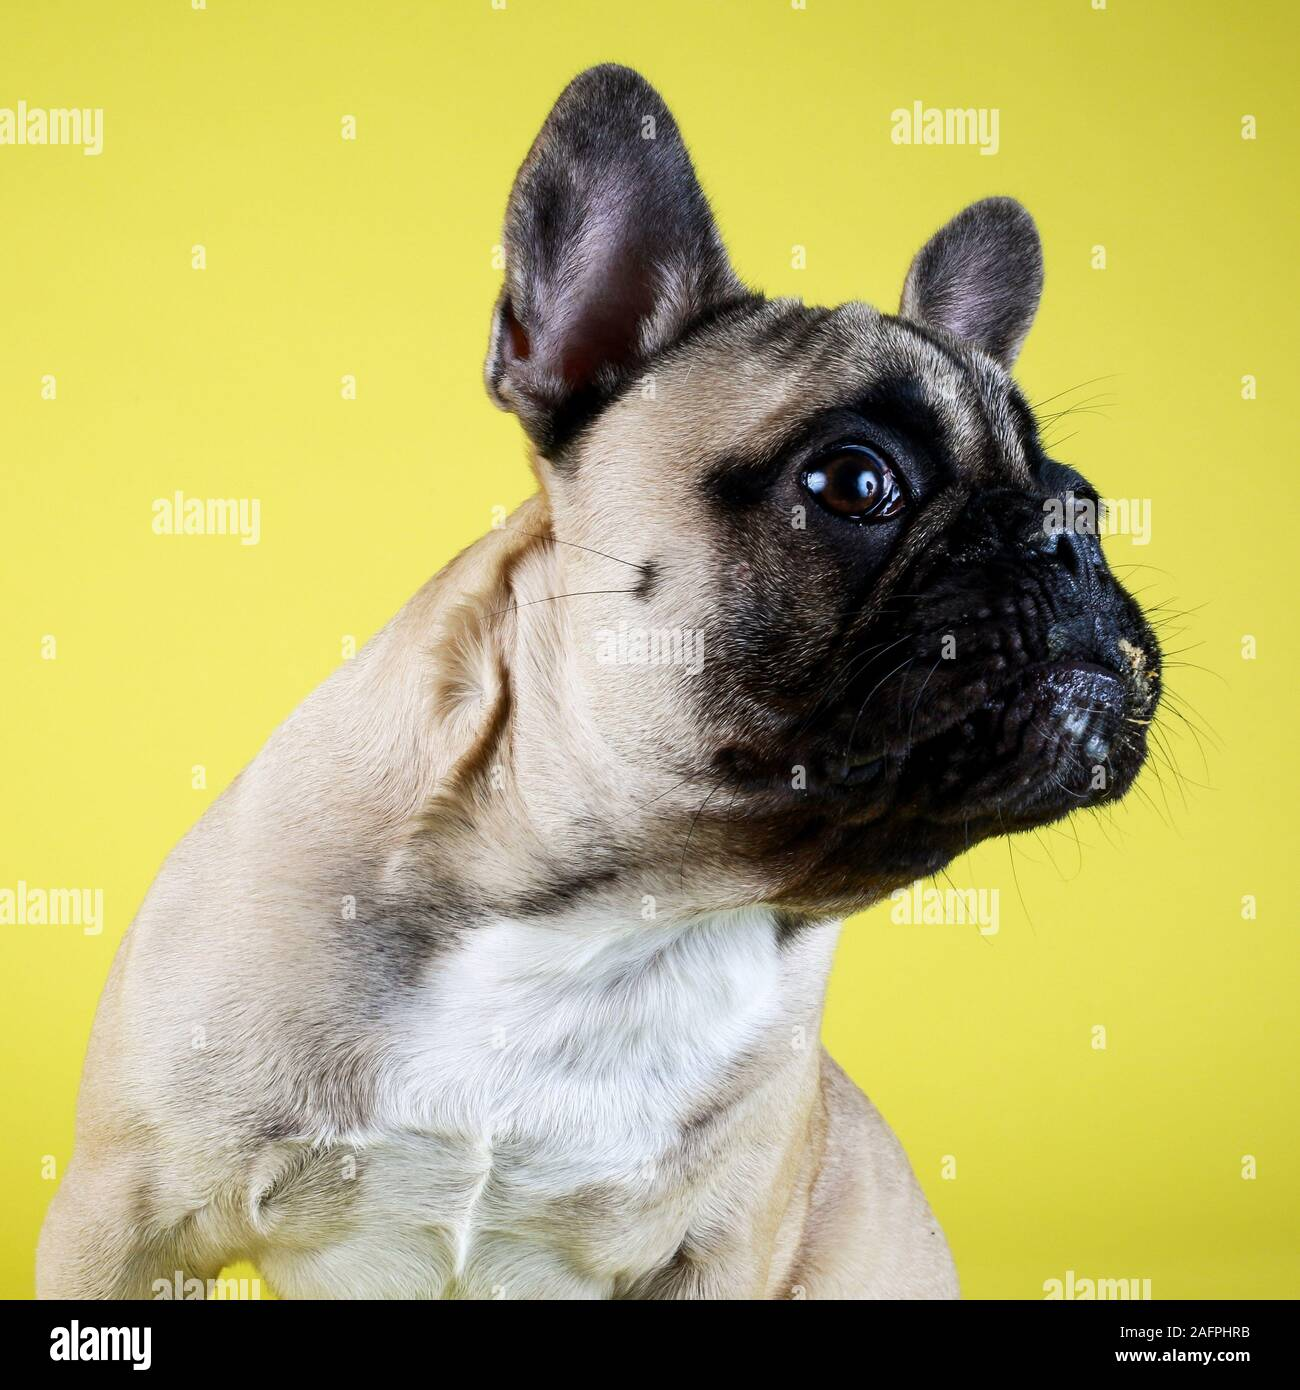 Funny Surprised French Bulldog Puppy On Yellow Studio Background Stock Photo Alamy